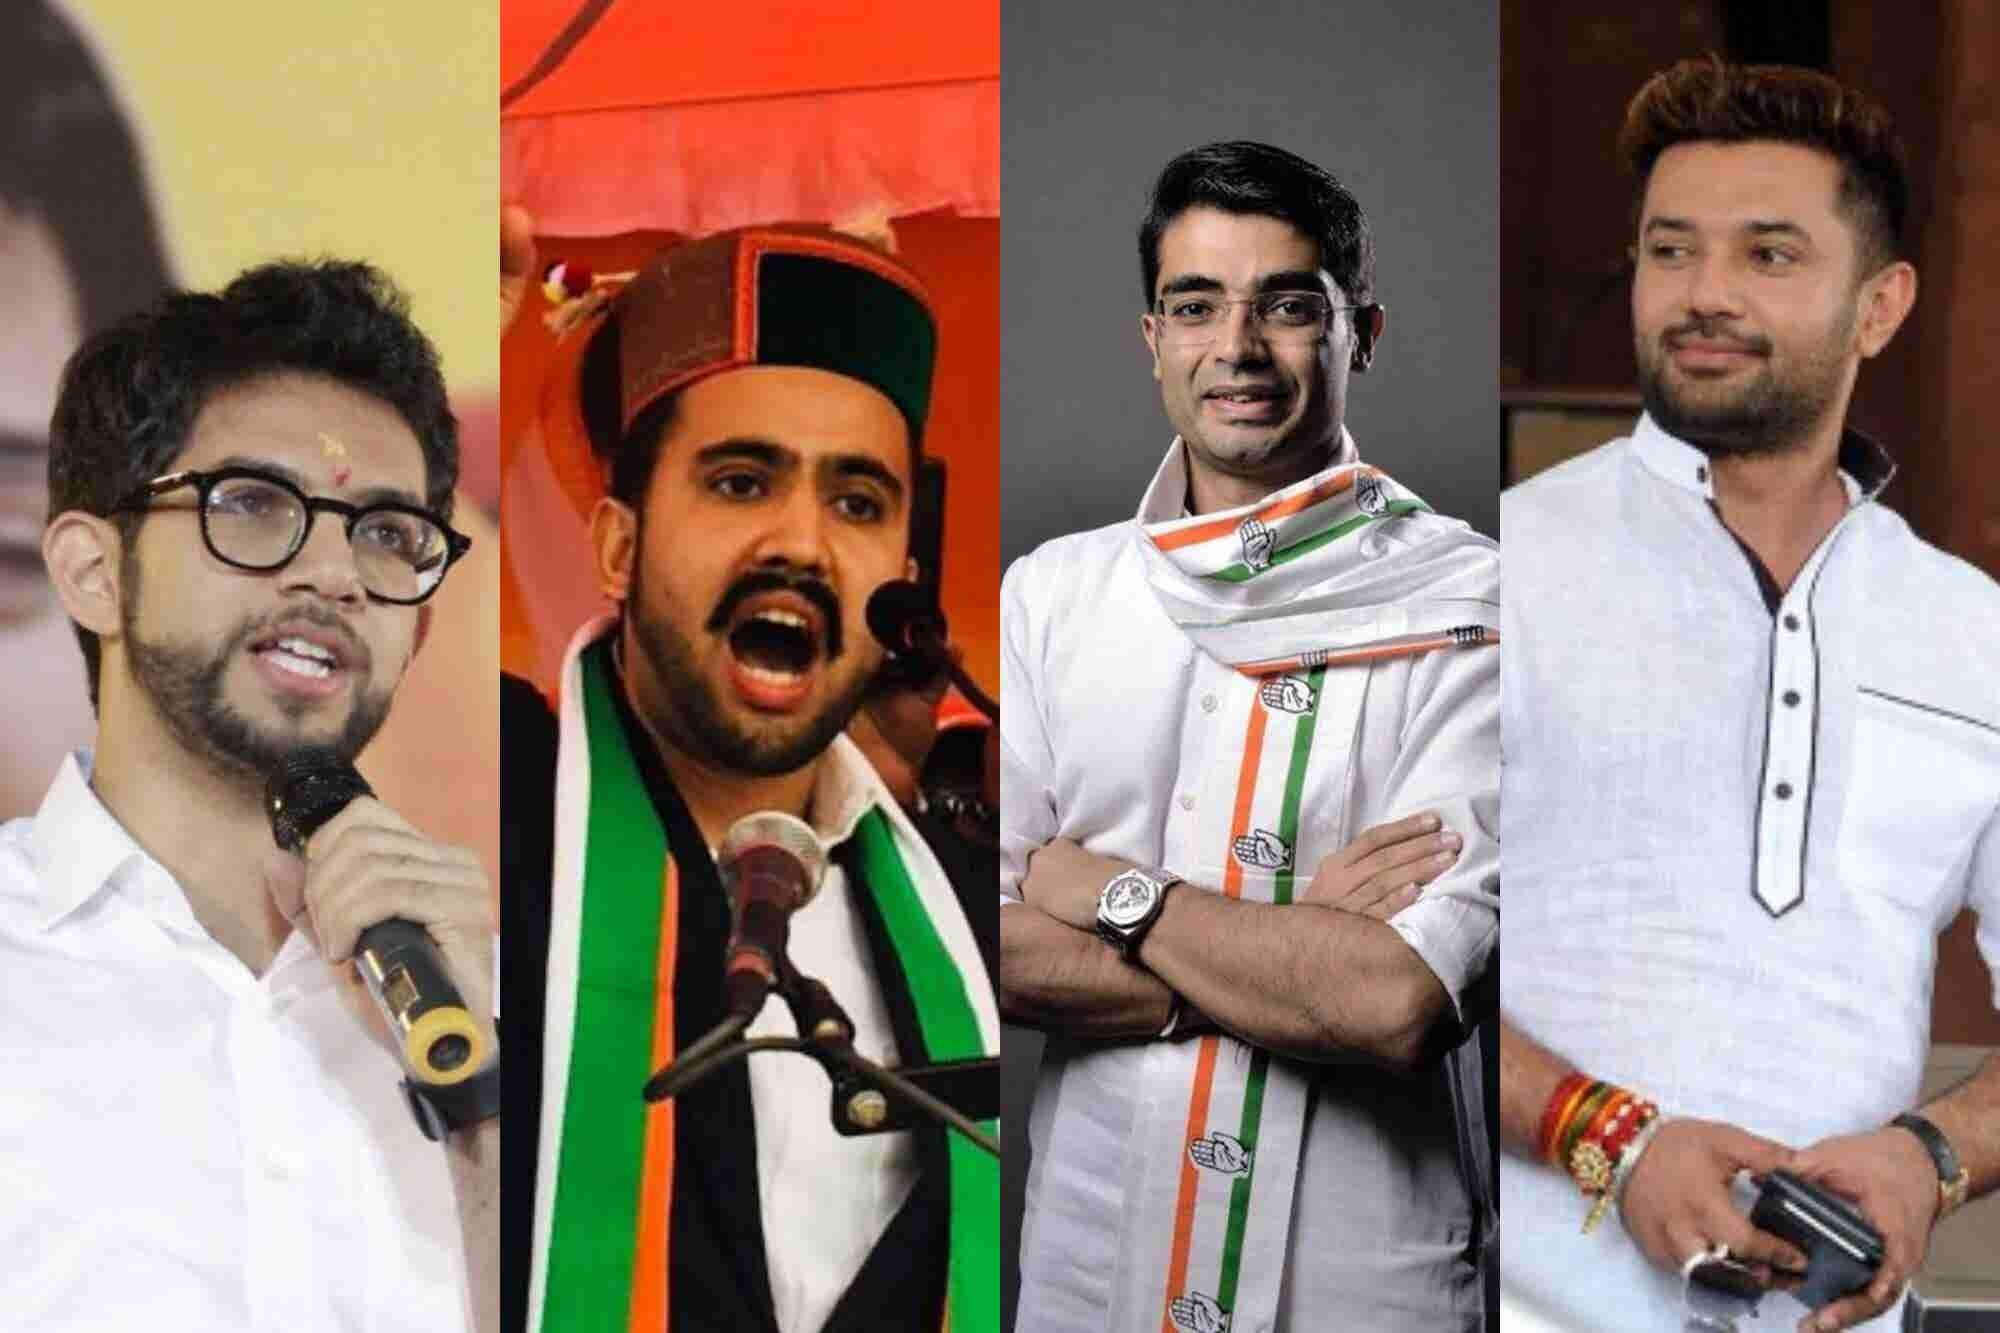 5 Young & Dynamic Indian Politicians to Look Out For in 2019 Elections